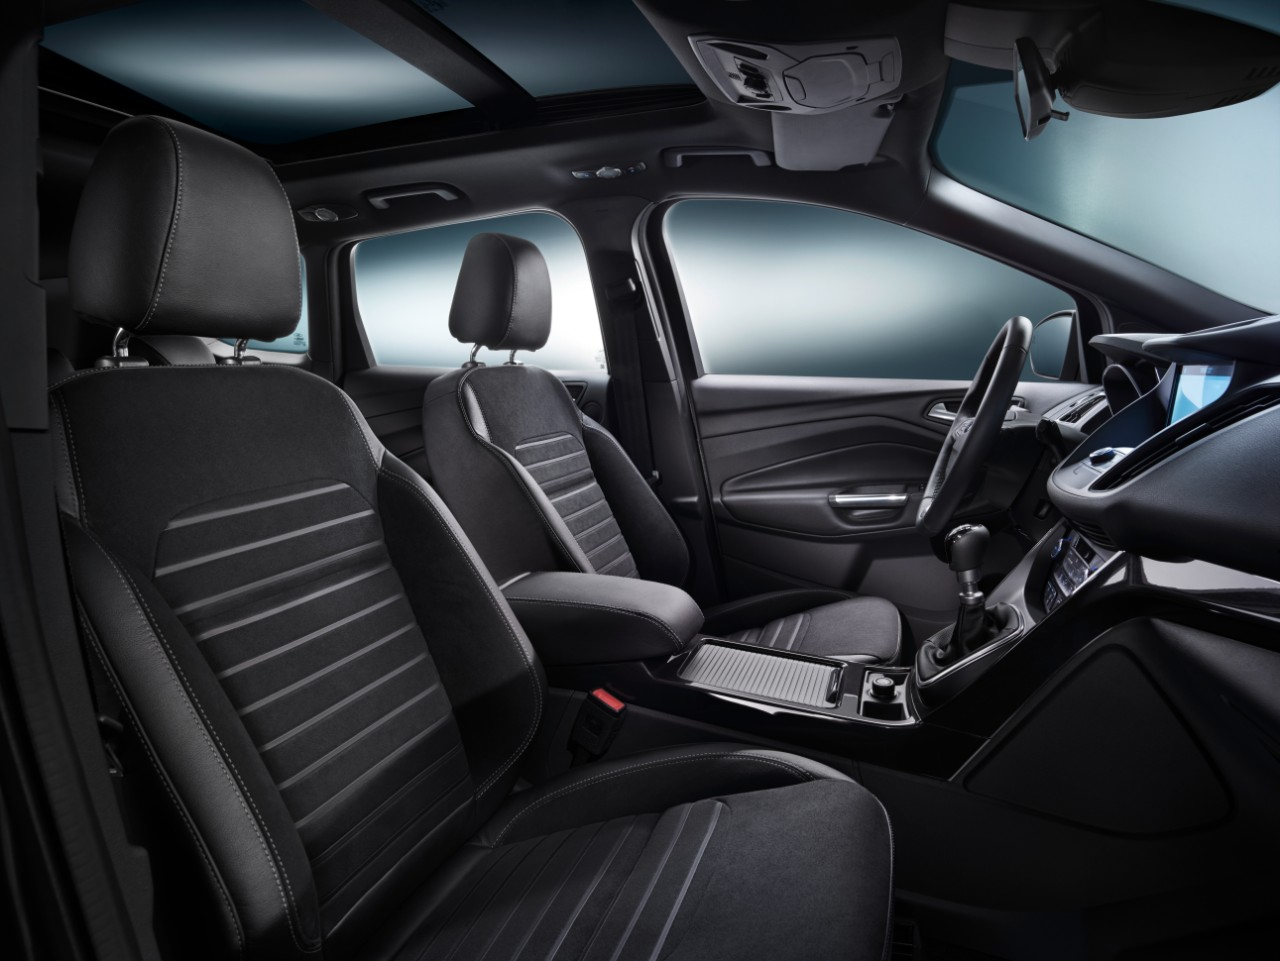 FORD_KUGA_MS_InteriorSitze_11_eciRGB